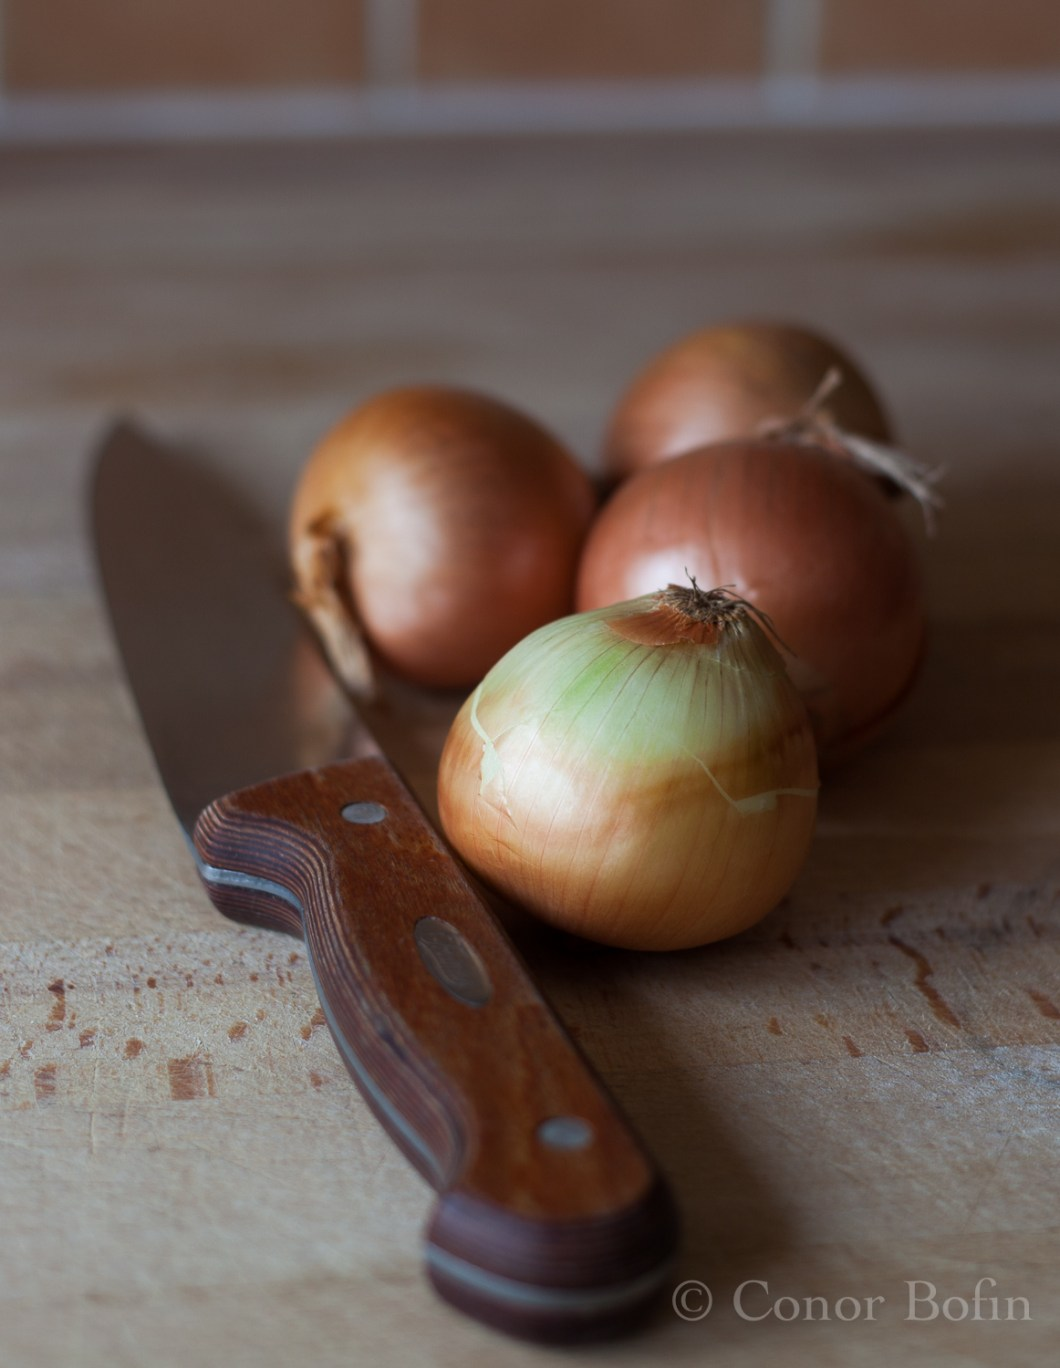 An artistic shot of some onions - Why not?